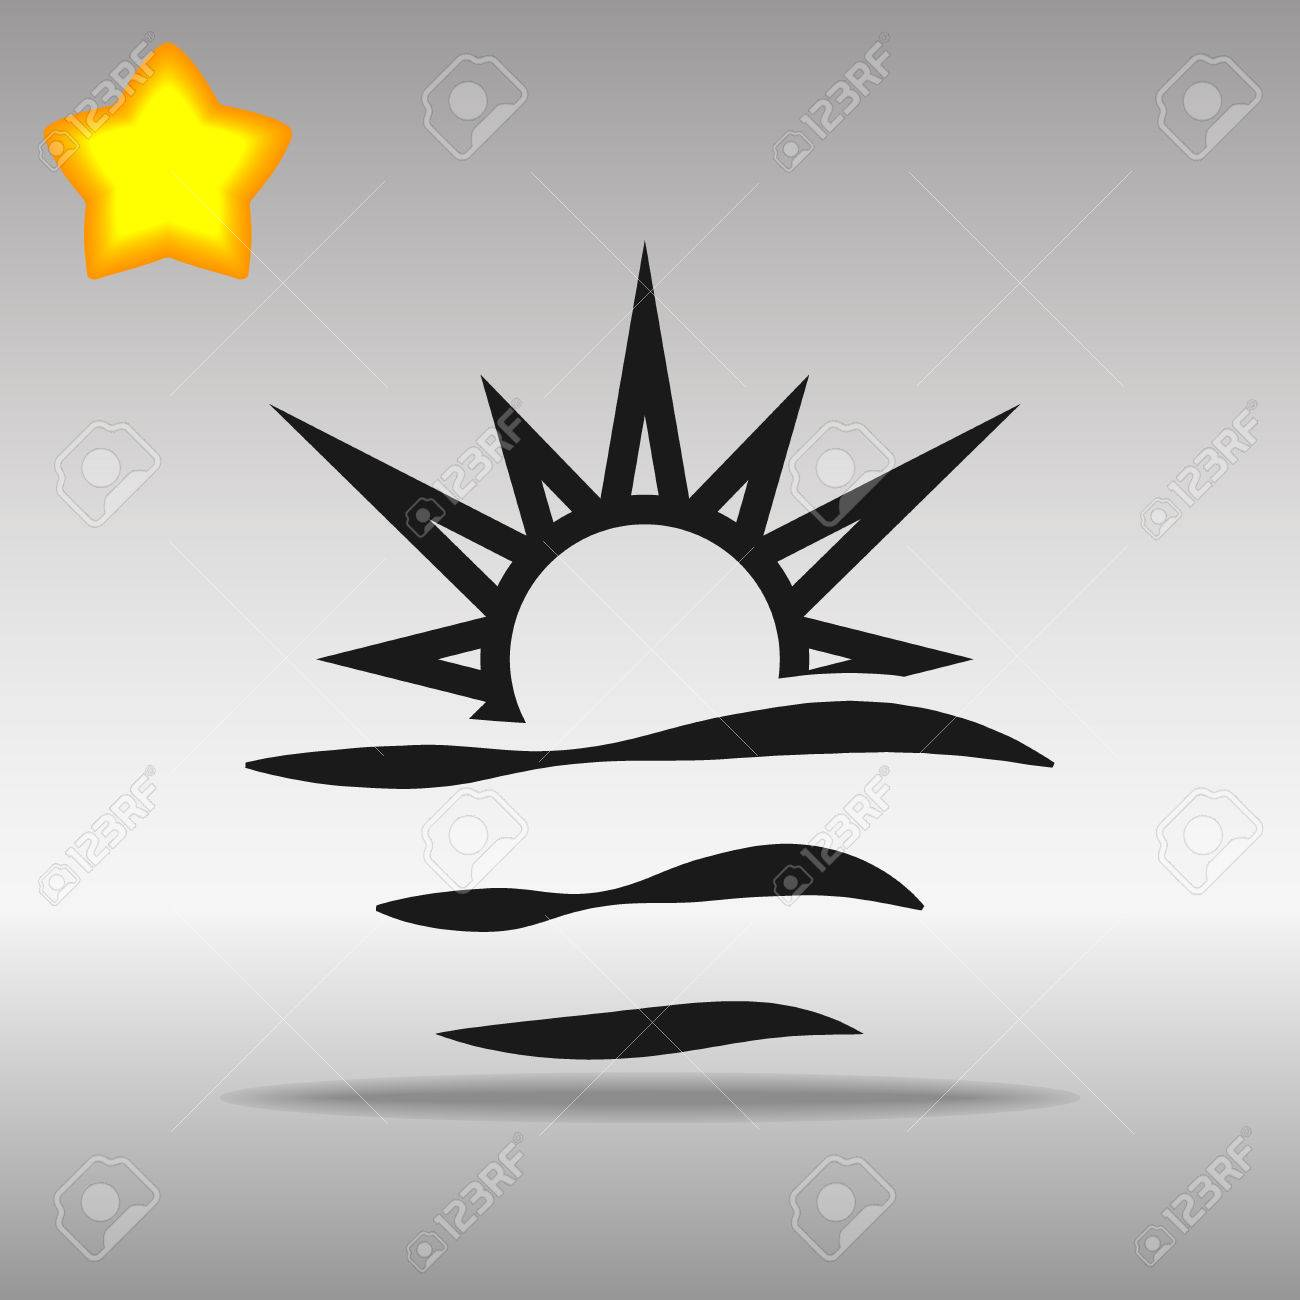 black sunrise Icon button logo symbol concept high quality on the gray background - 82176388